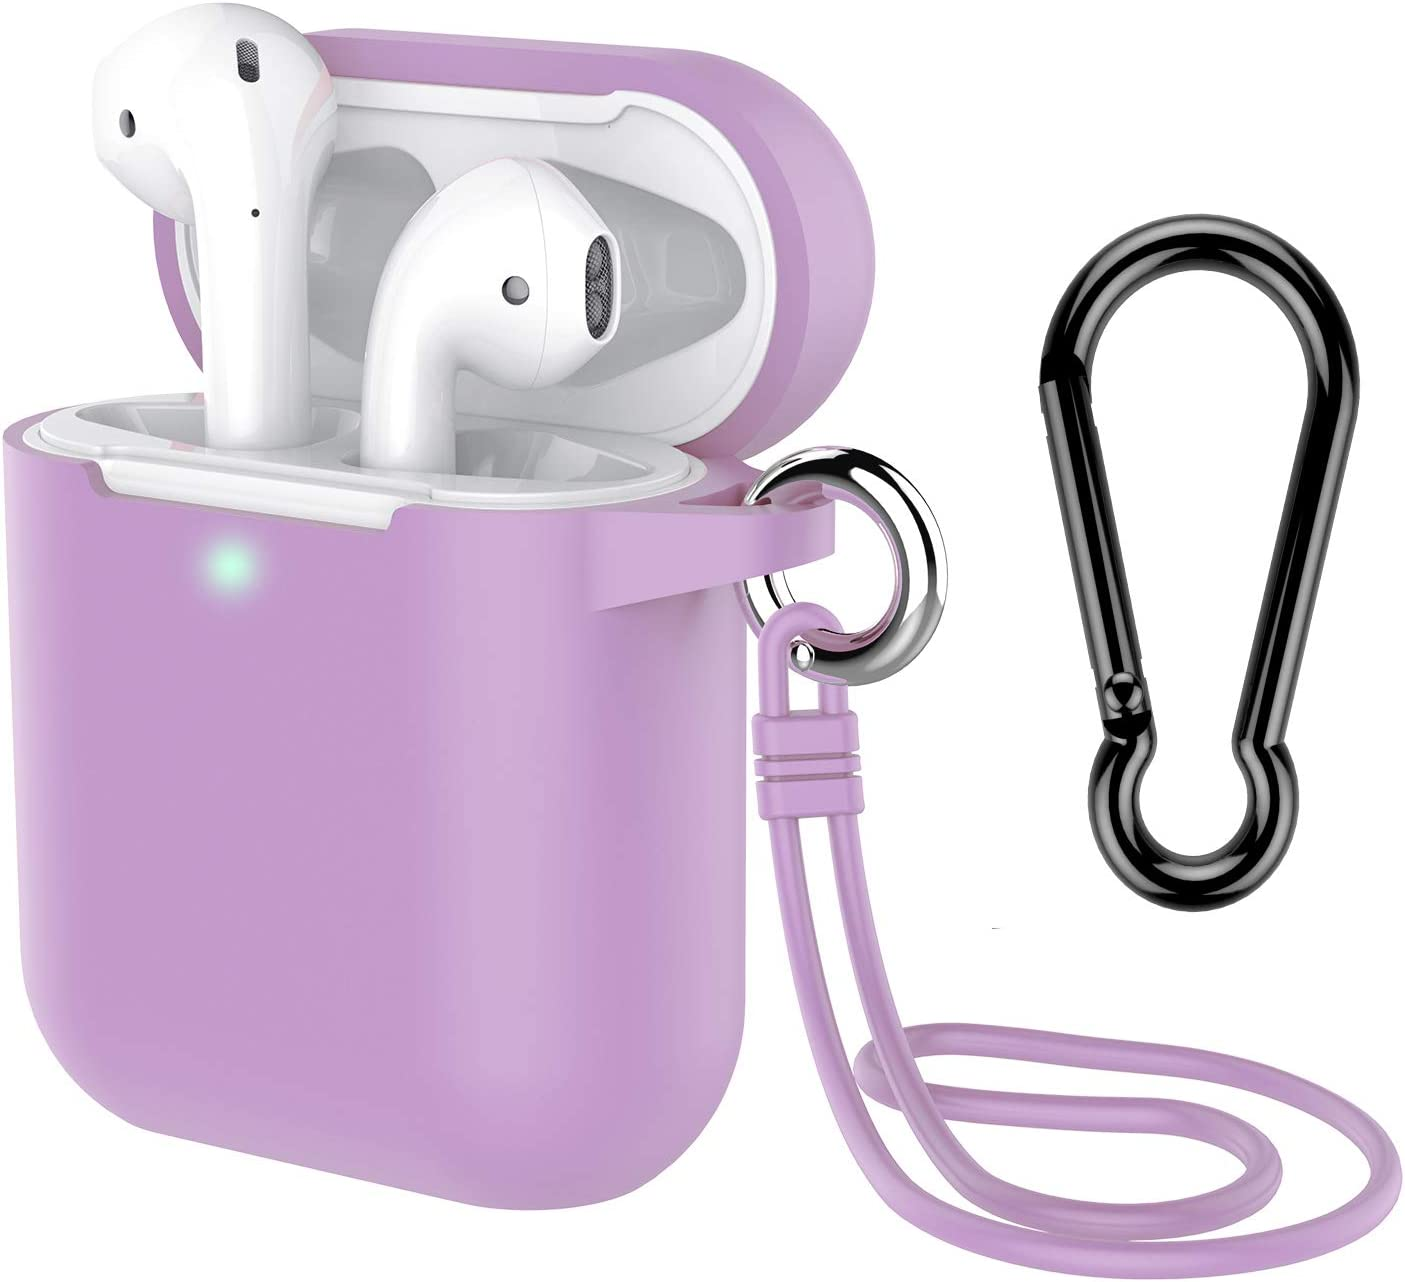 AirPods Case with Keychain, Coffea Silicone Protective Case with Stap for AirPods 2 & 1 [Front LED Visible] (Light Purple)